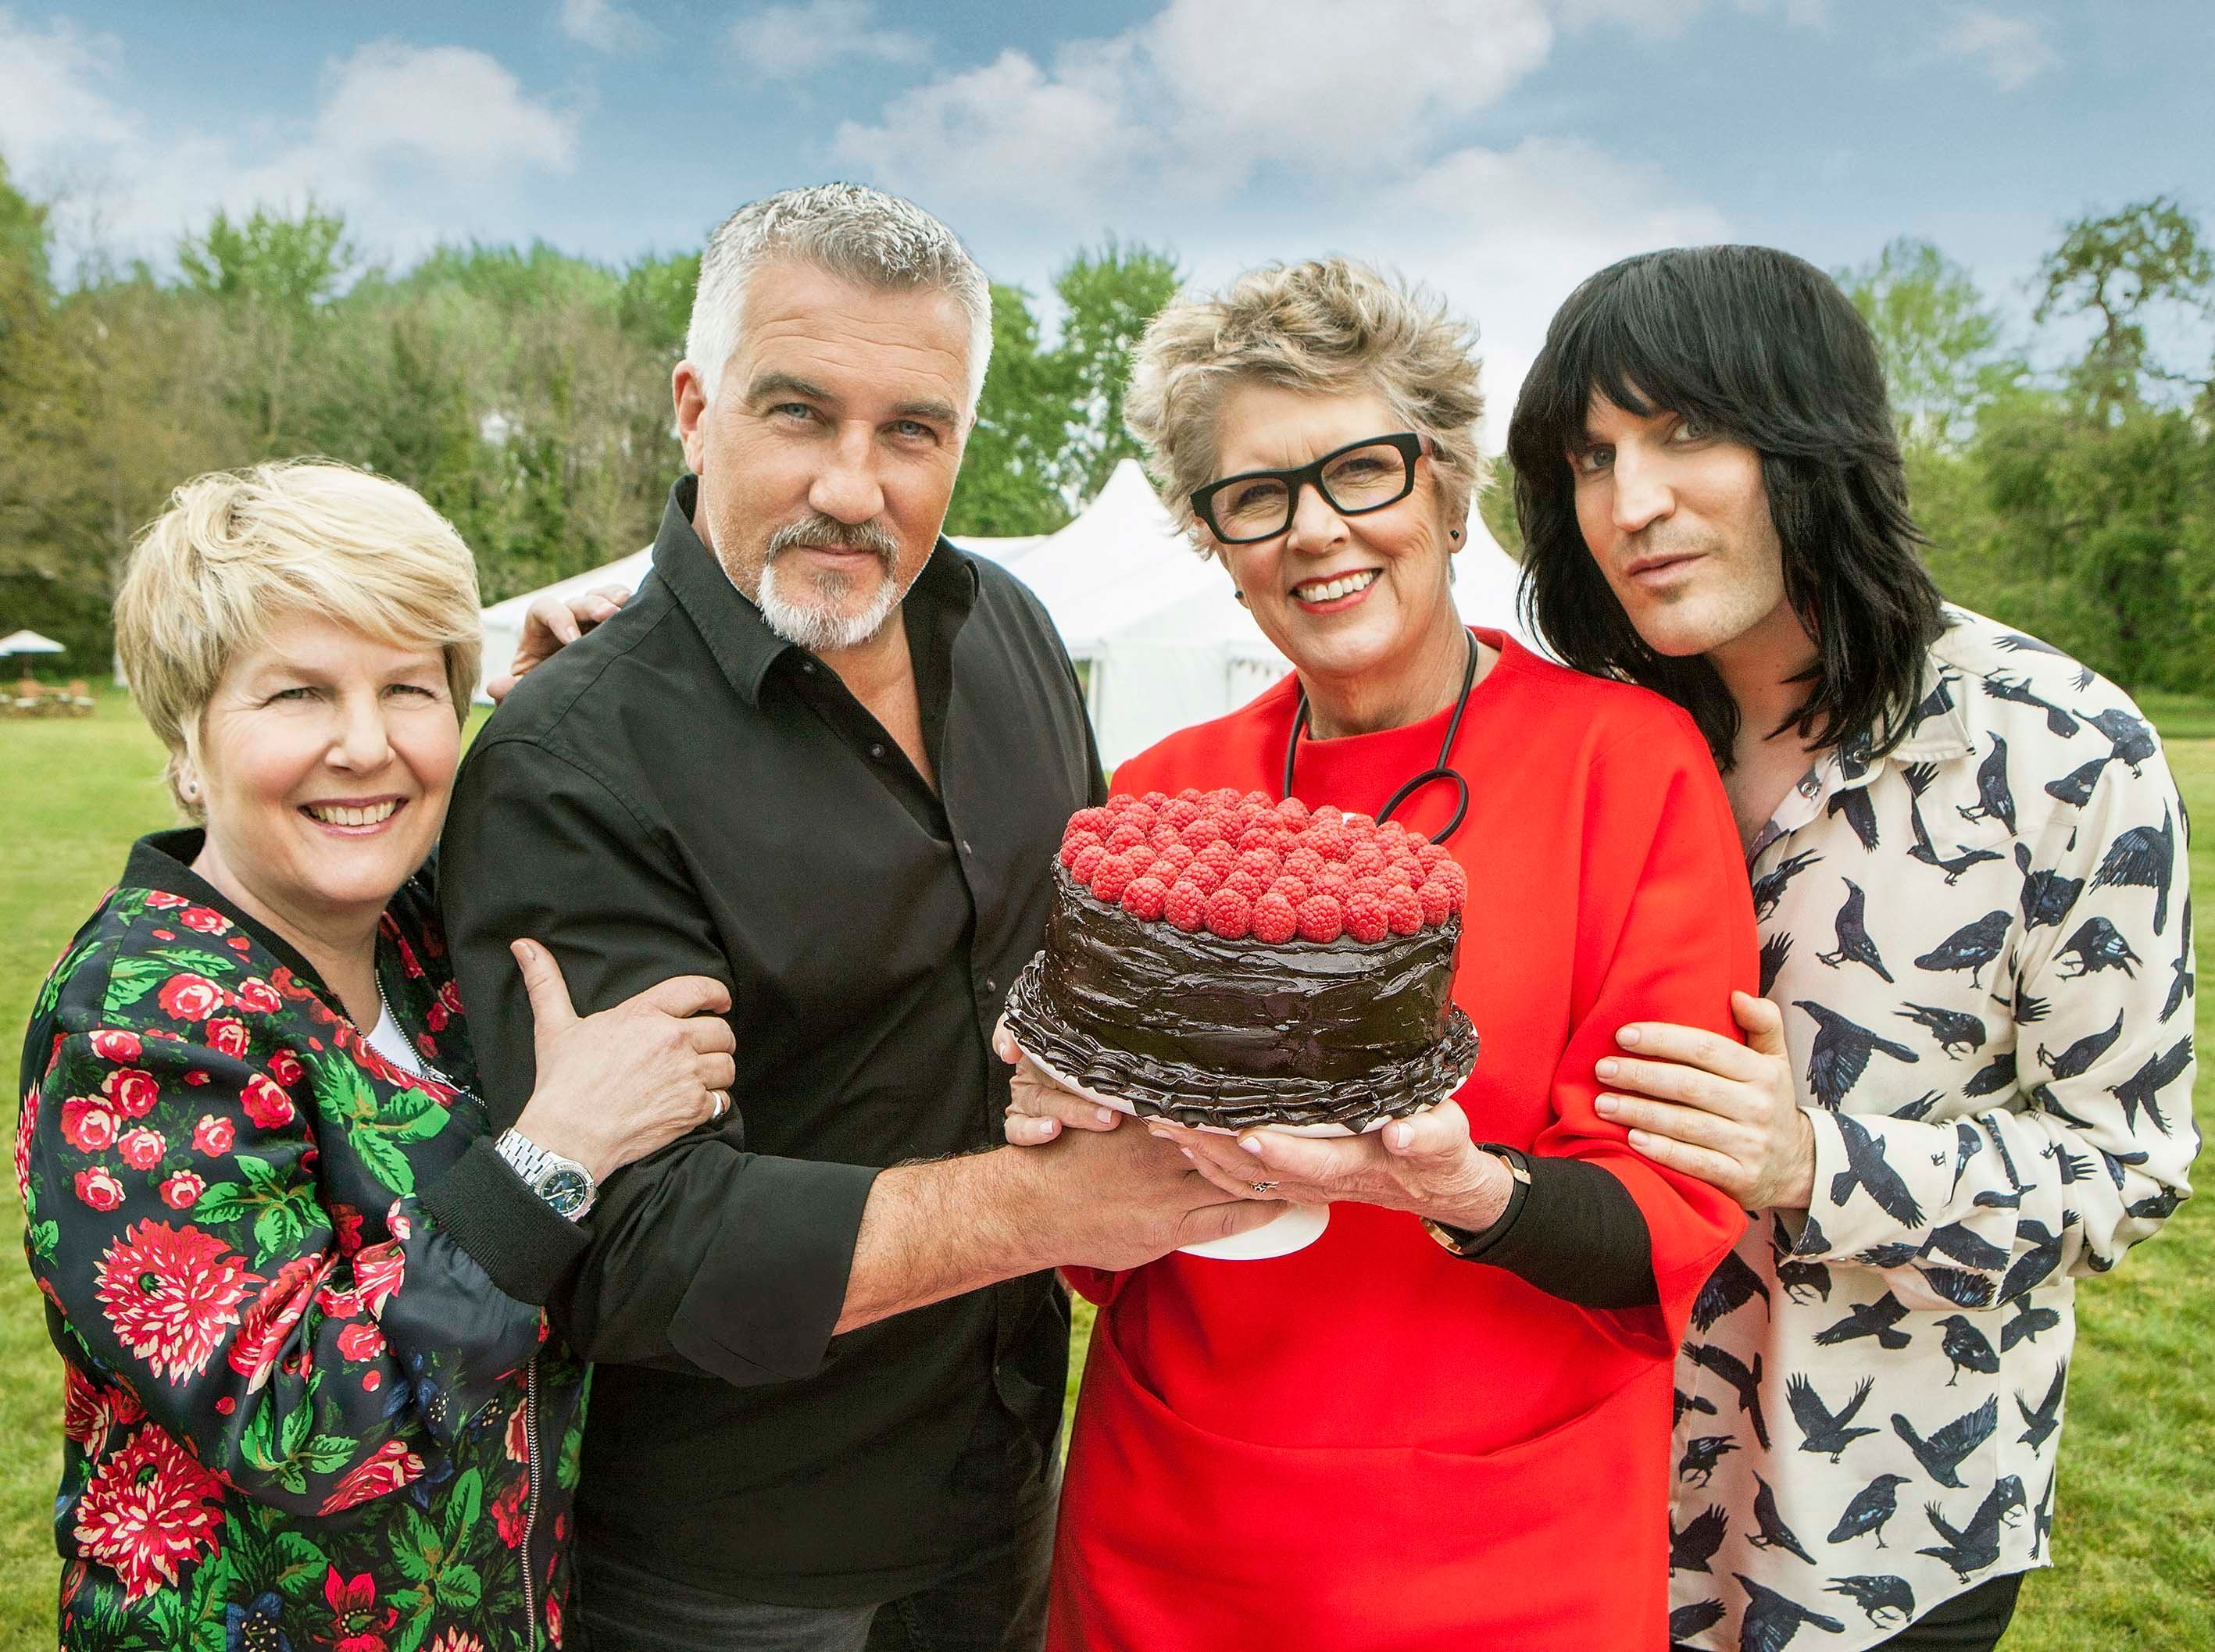 'Bake Off' will be back on our screens later this